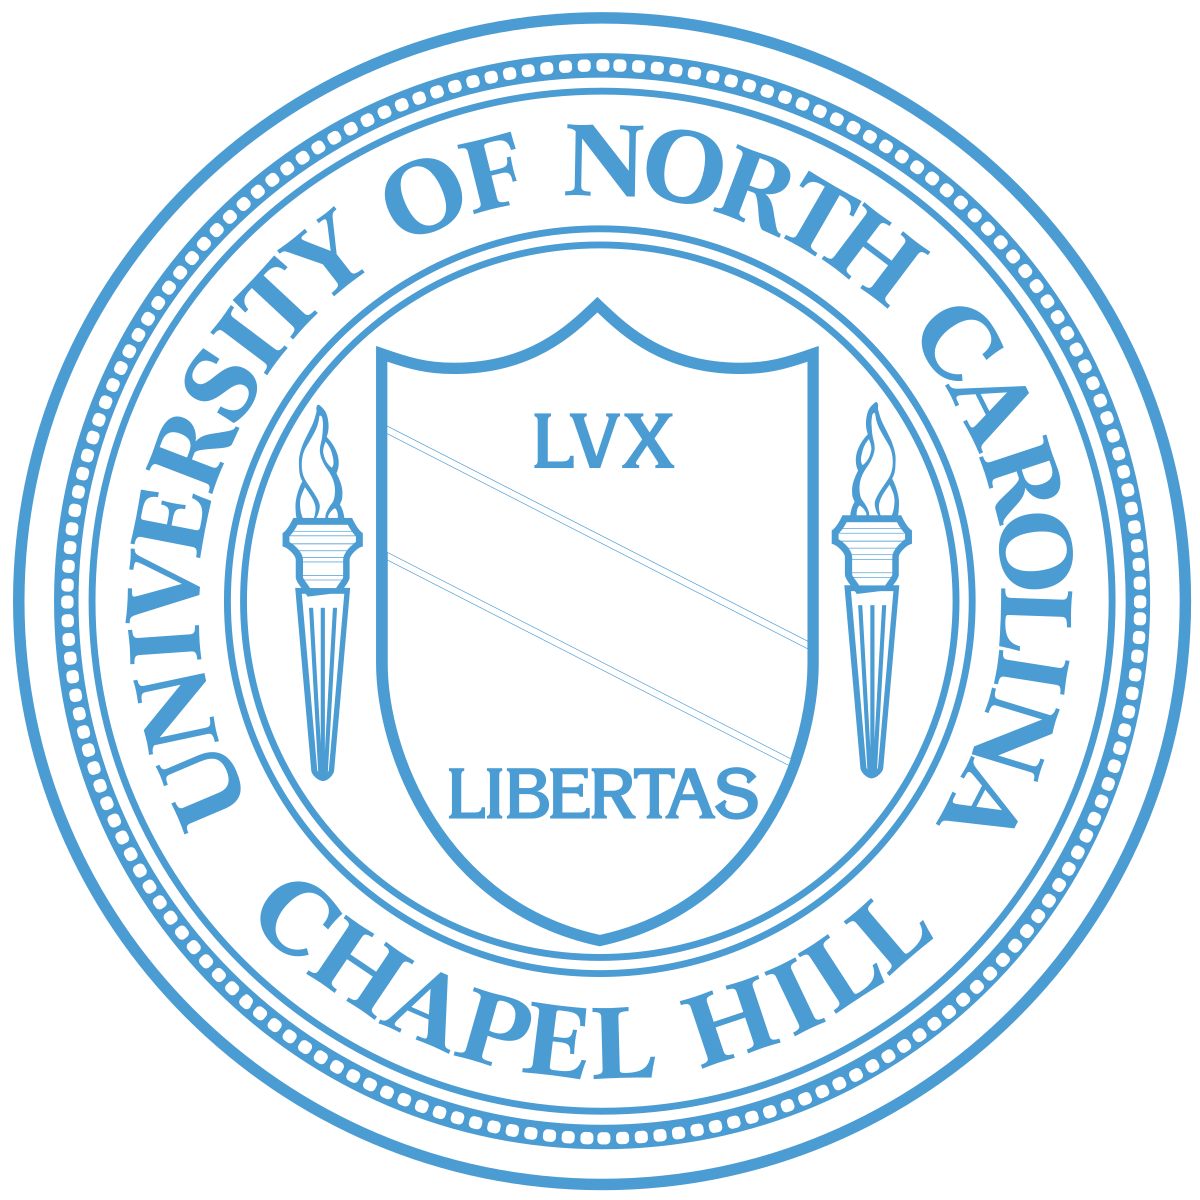 University of North Carolina Coin Customer